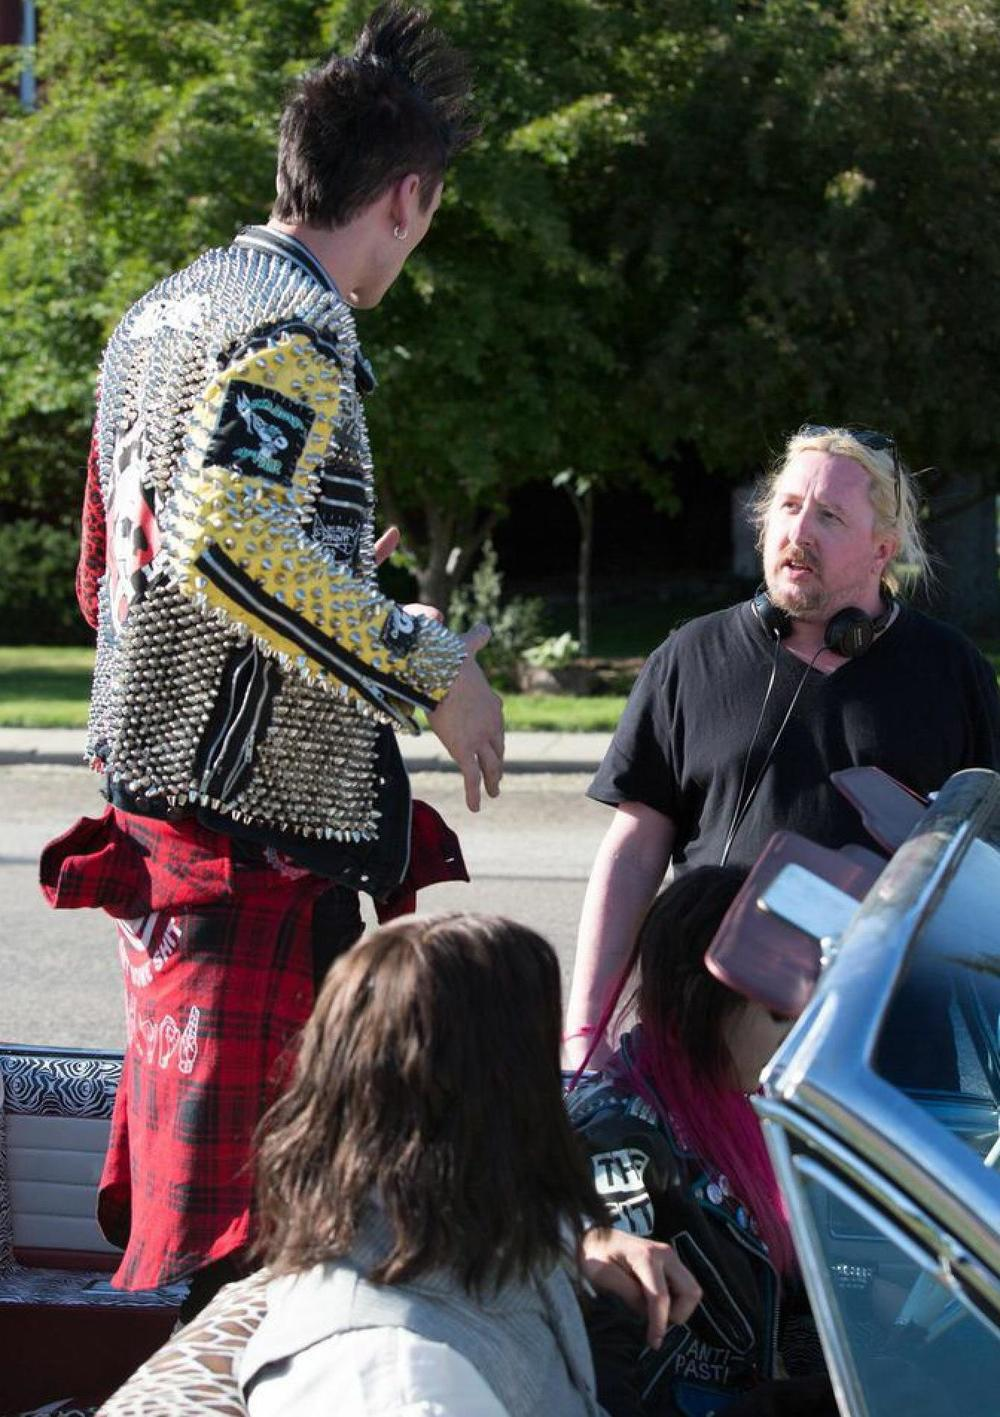 first-photos-from-punks-dead-slc-punk-27